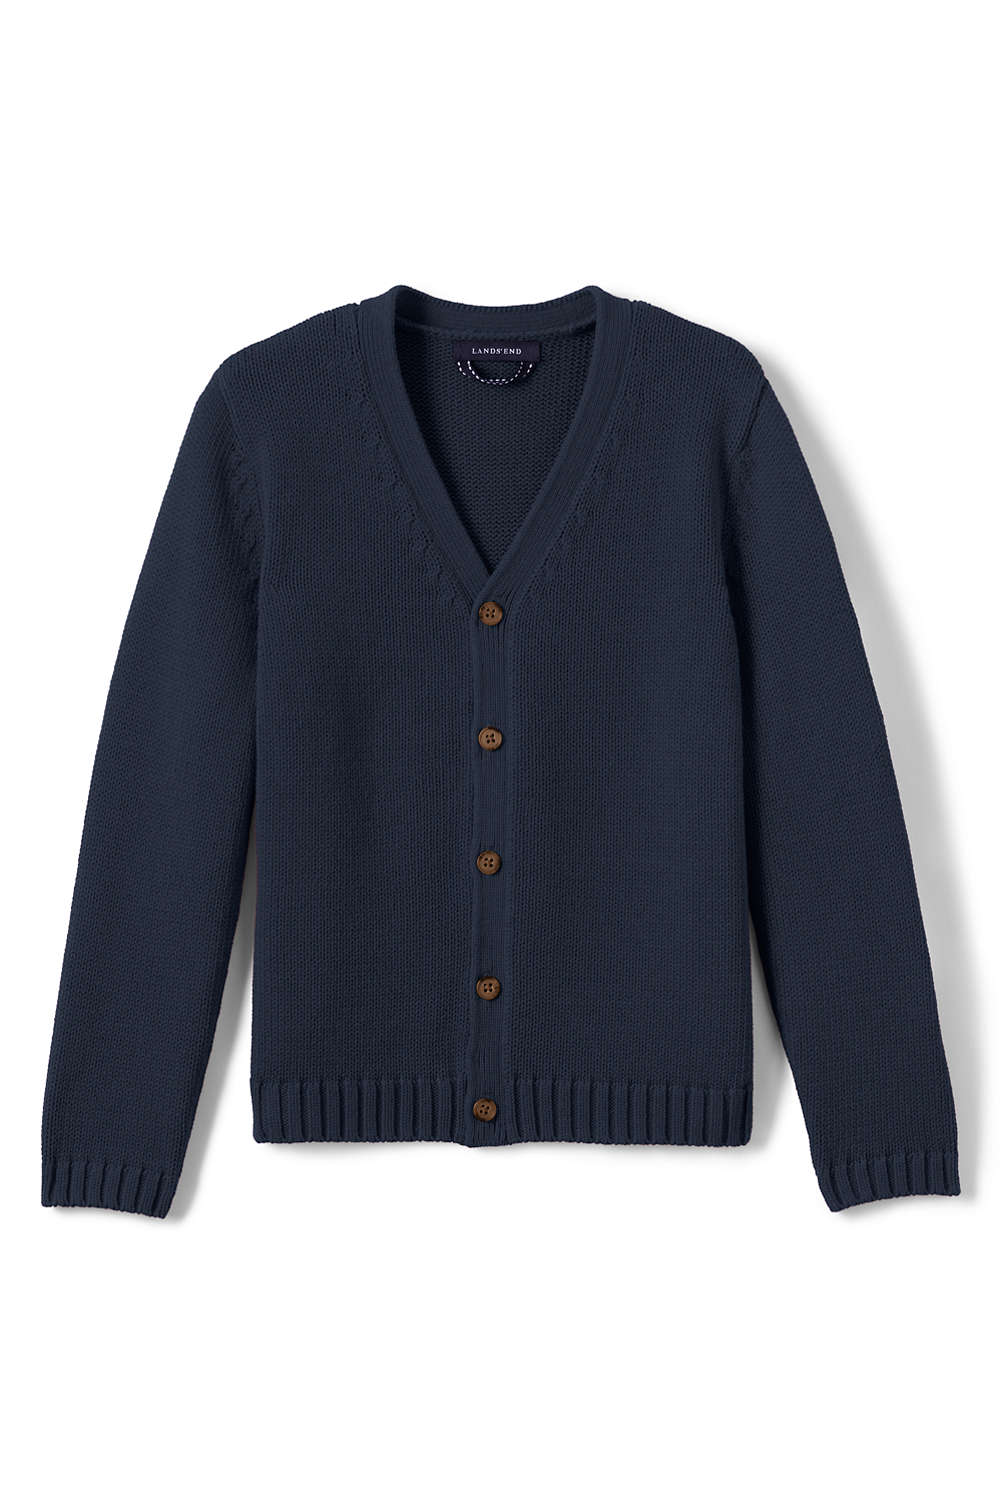 7836f7044 Boys Drifter Button Front Cardigan from Lands  End